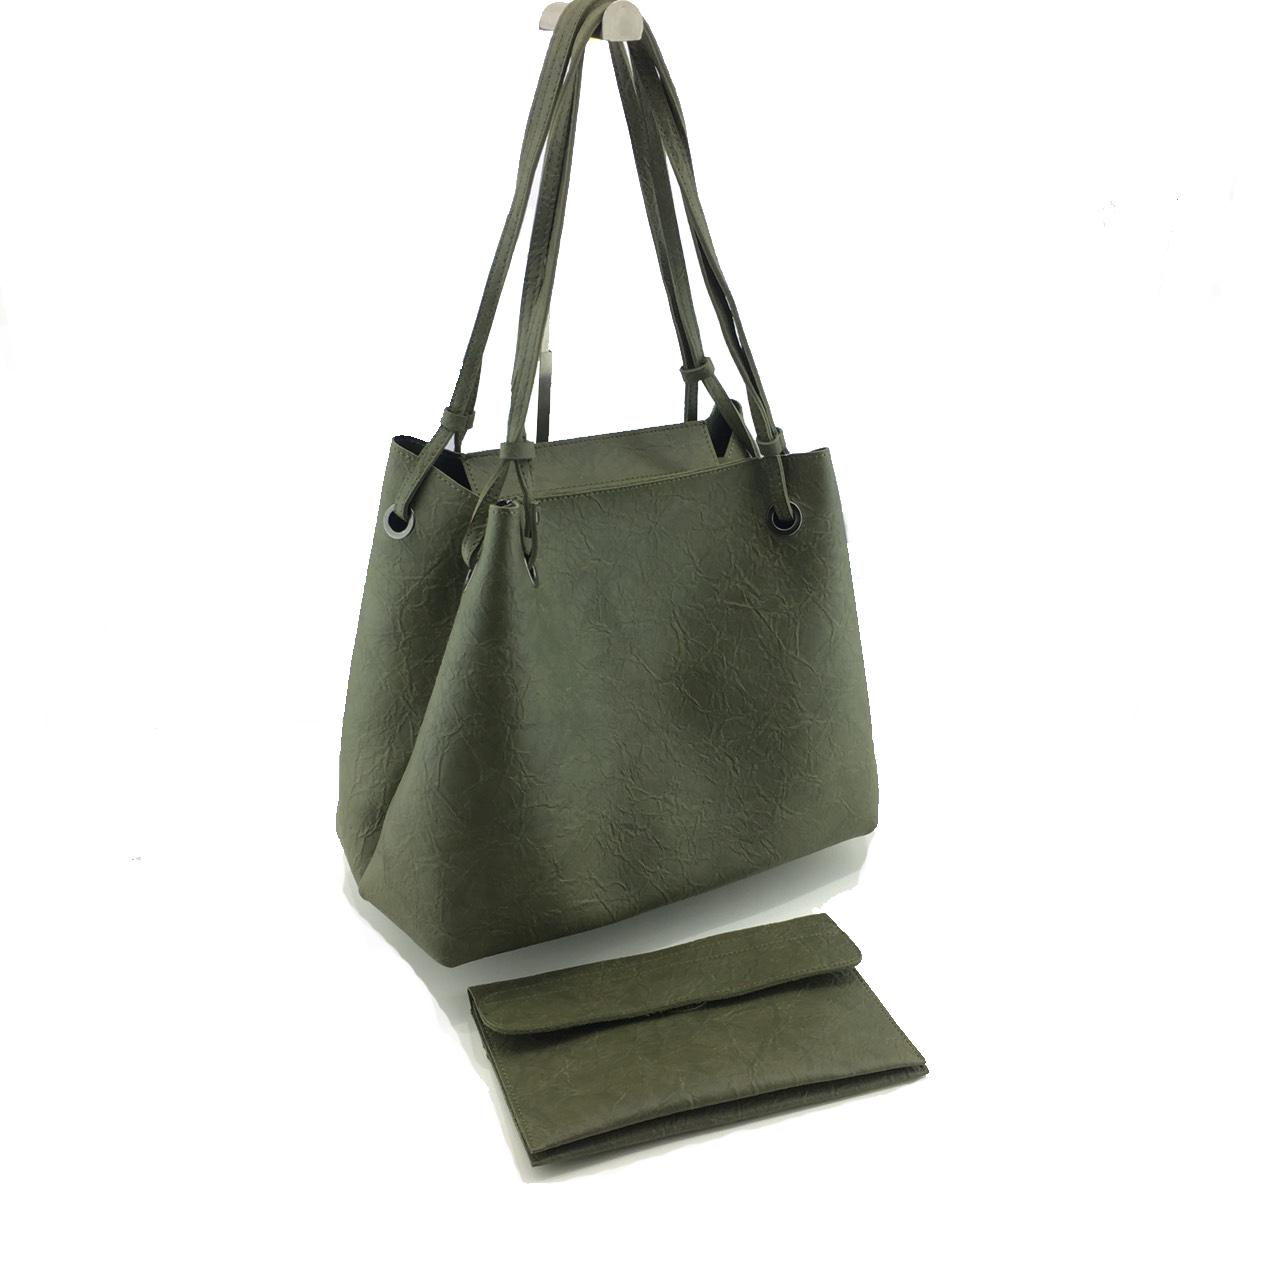 bfa8fa99577 Women s Bags In Nepal At Best Prices - Daraz.com.np